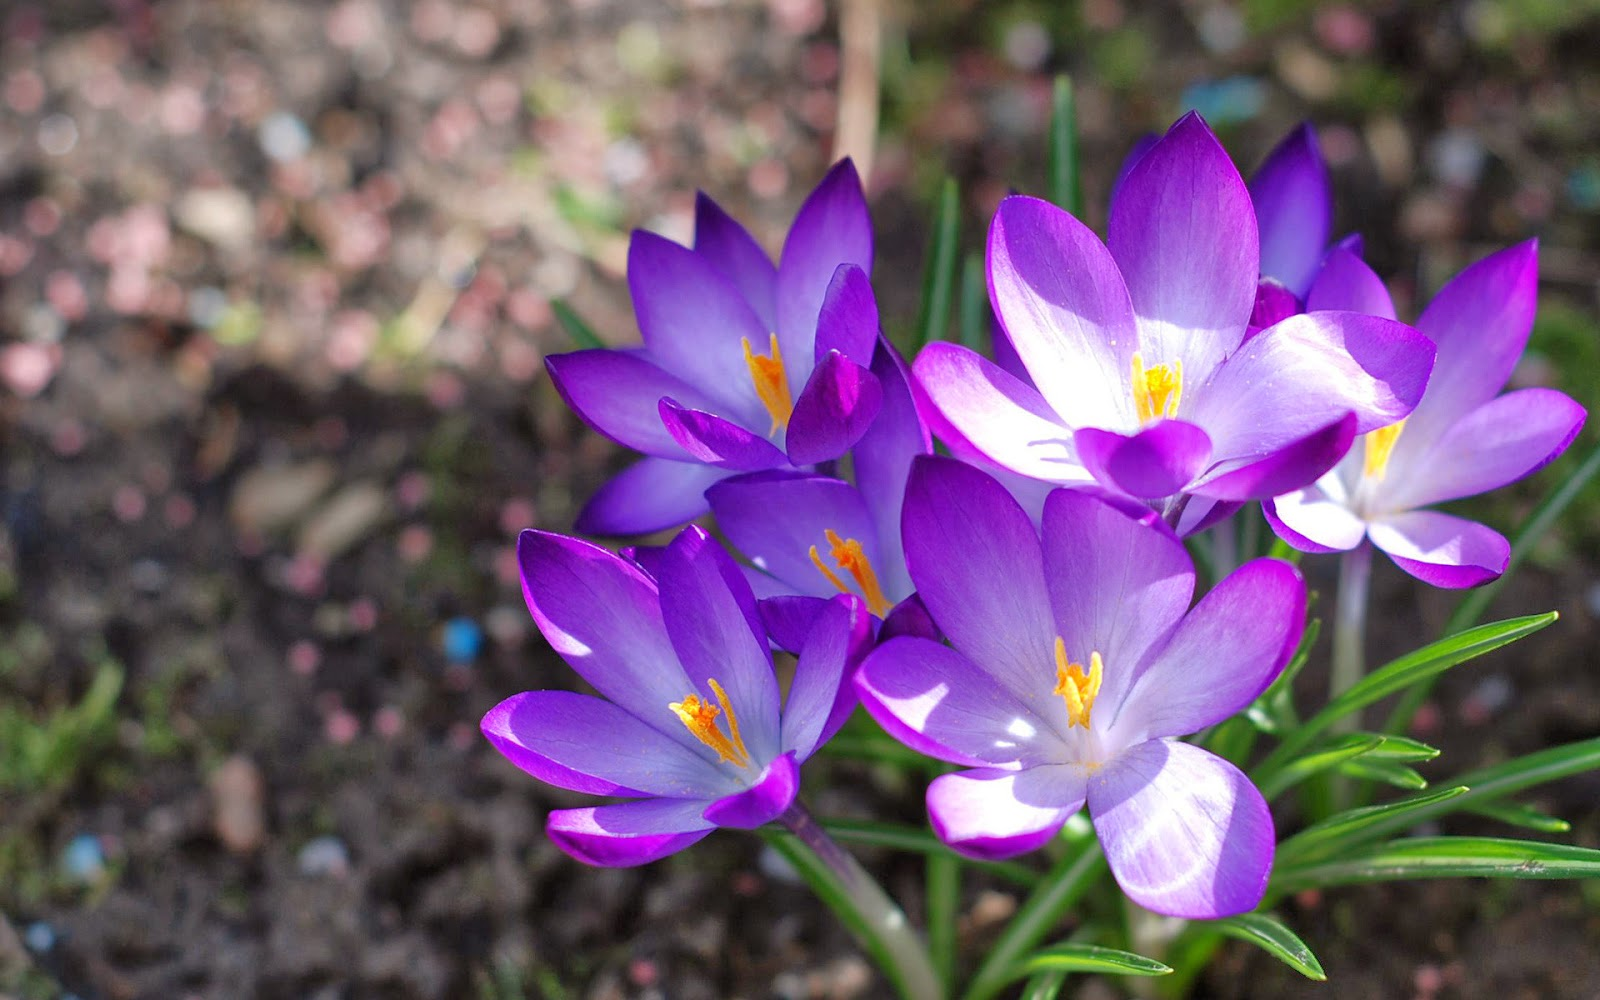 When It Comes To This Particular Bloom They Come In As Many Colors You Can Think Up Purple Blue Eggshell And Even Gold Not Just But There Are